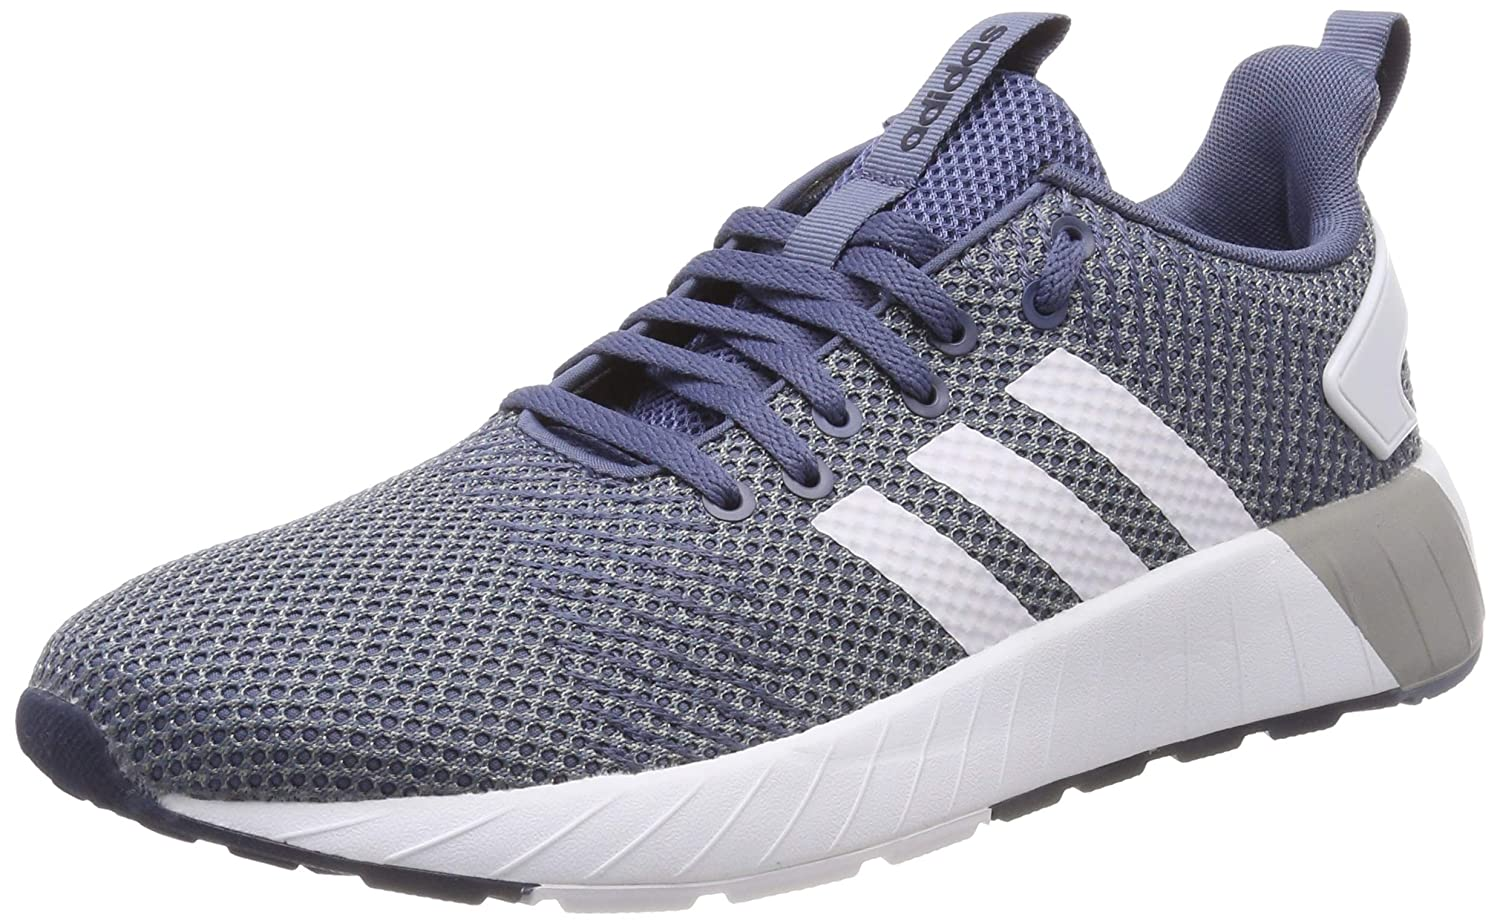 innovative design 0c4eb d8a24 adidas Questar Byd, Men s Trainers  Amazon.co.uk  Shoes   Bags